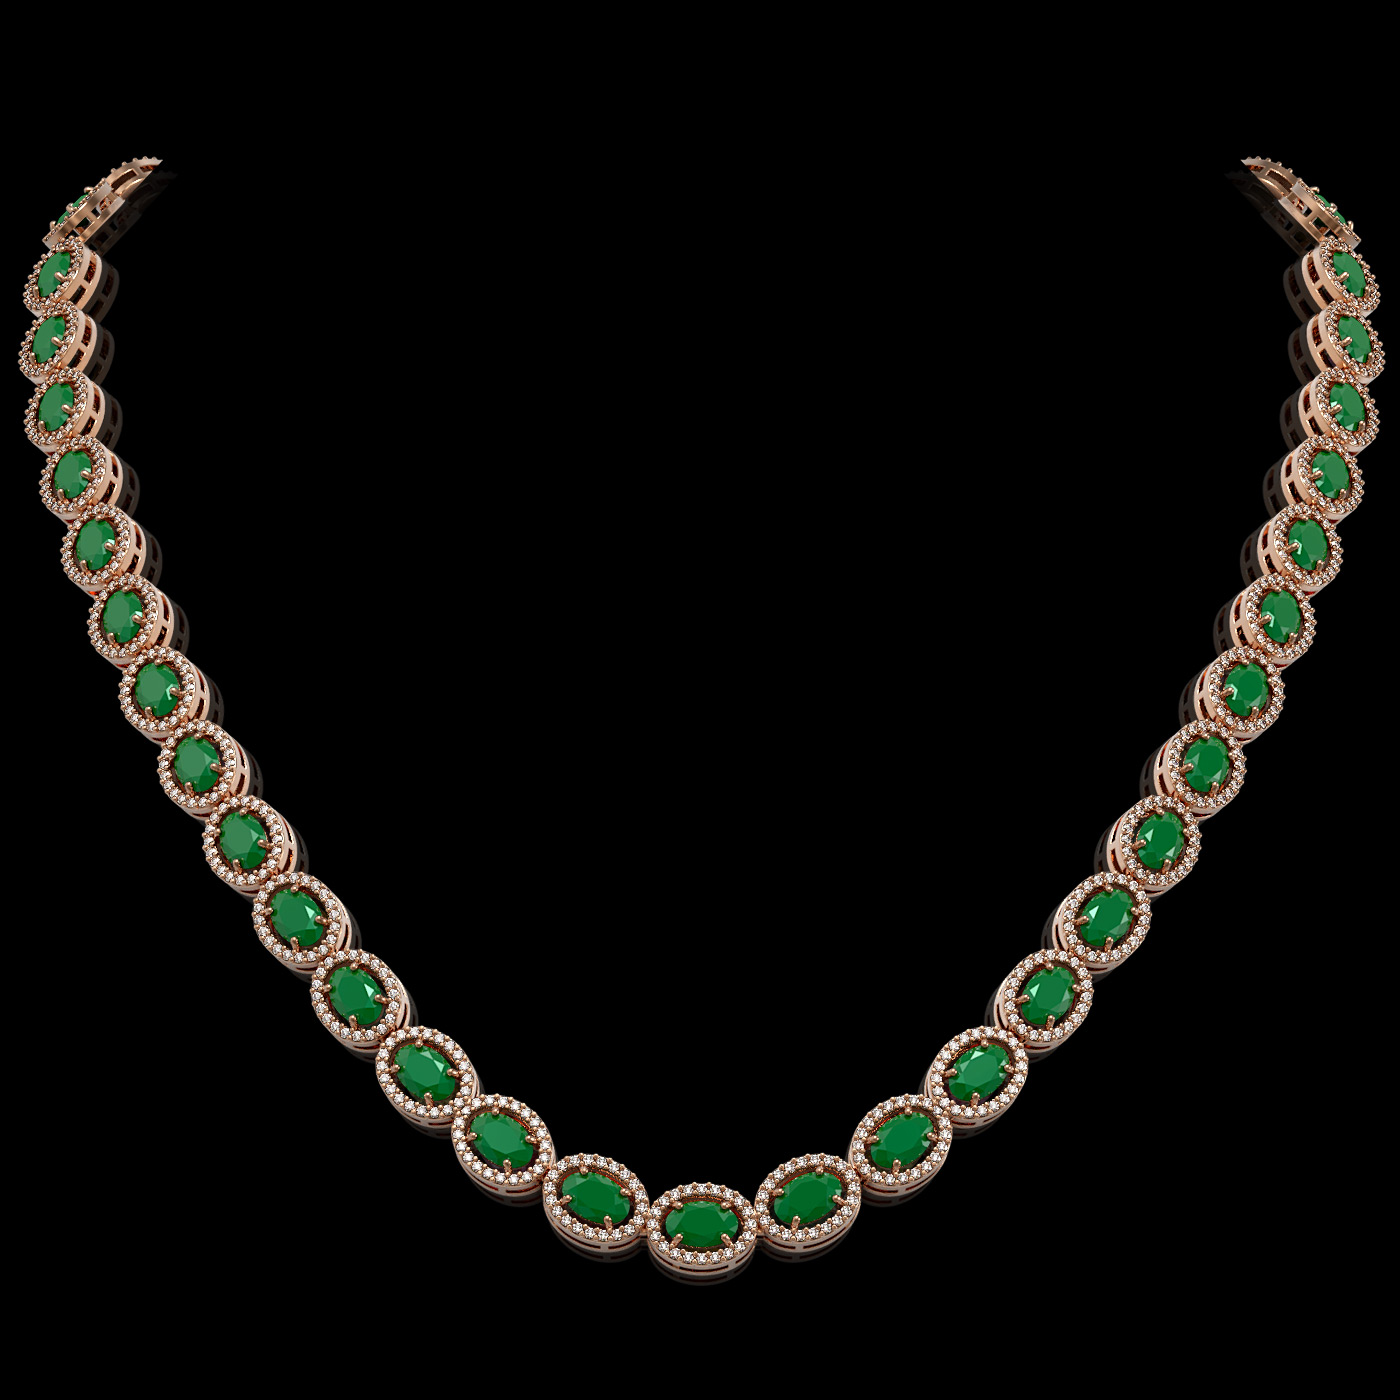 34.11 Ctw Emerald & Diamond Necklace Rose Gold